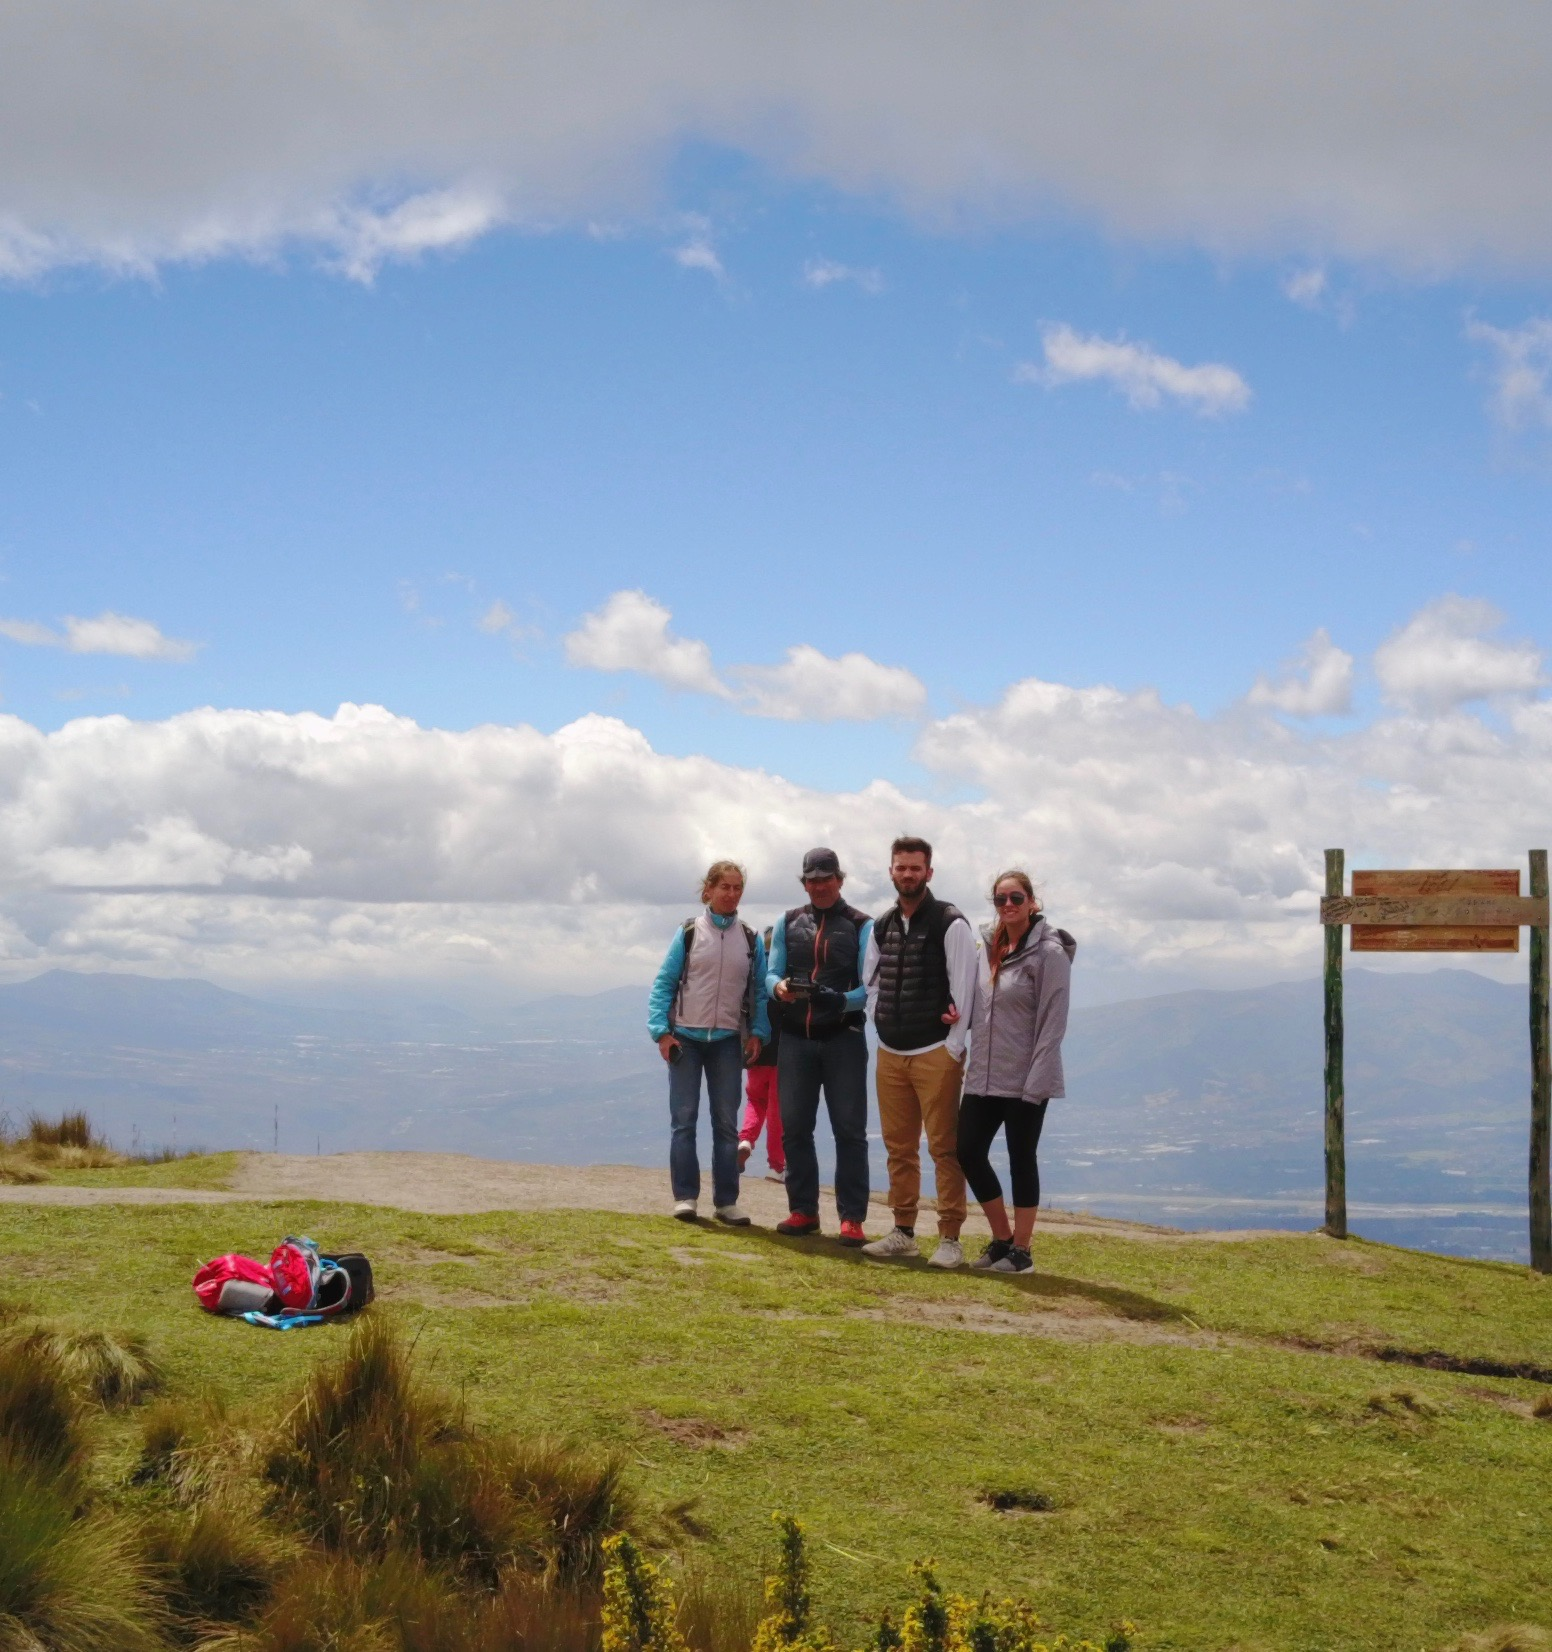 800 Meters above Quito